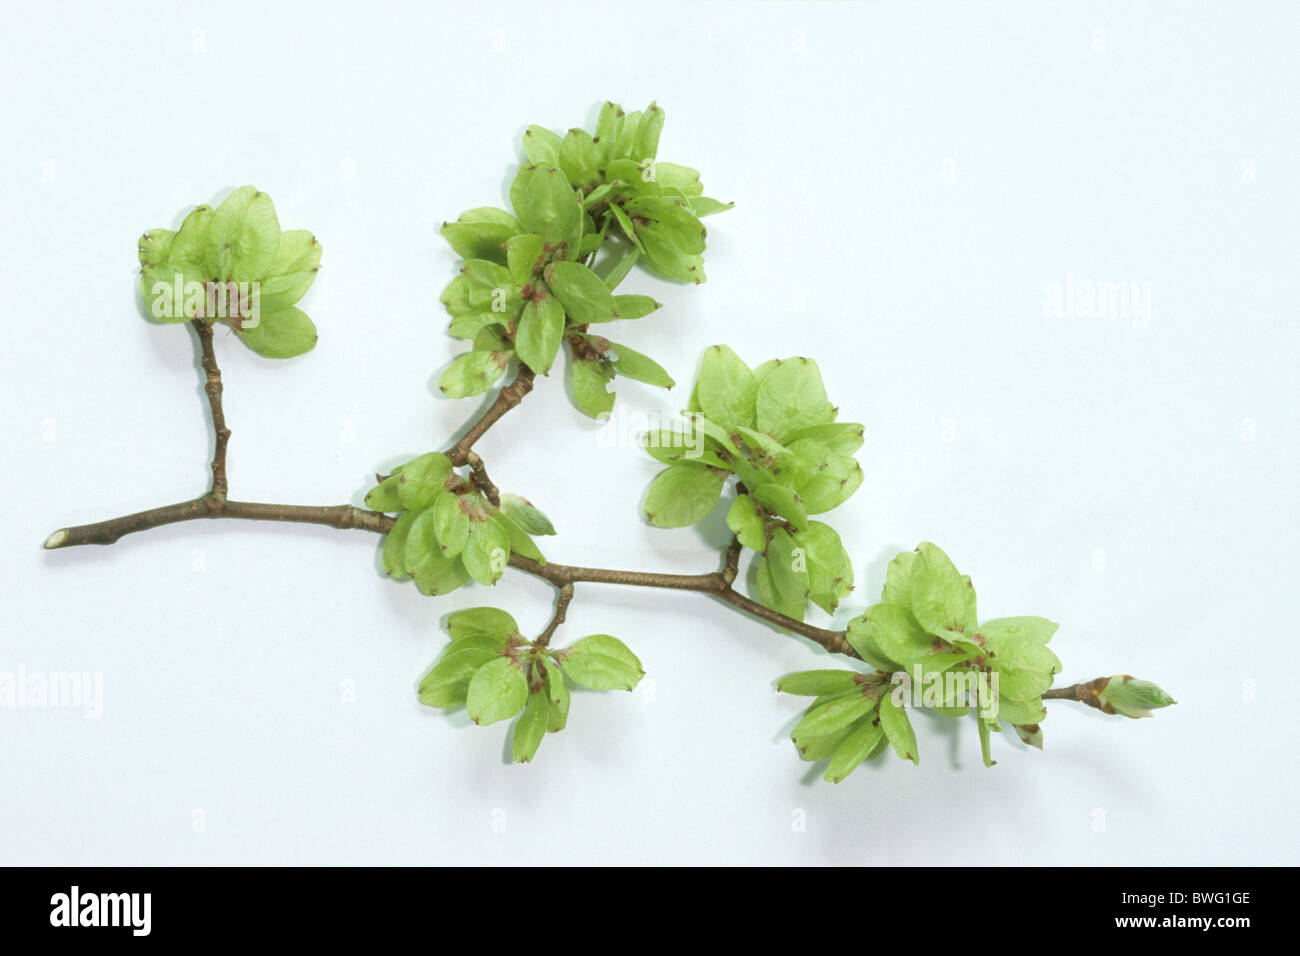 Wych Elm (Ulmus glabra), twig with fruit, studio picture. - Stock Image